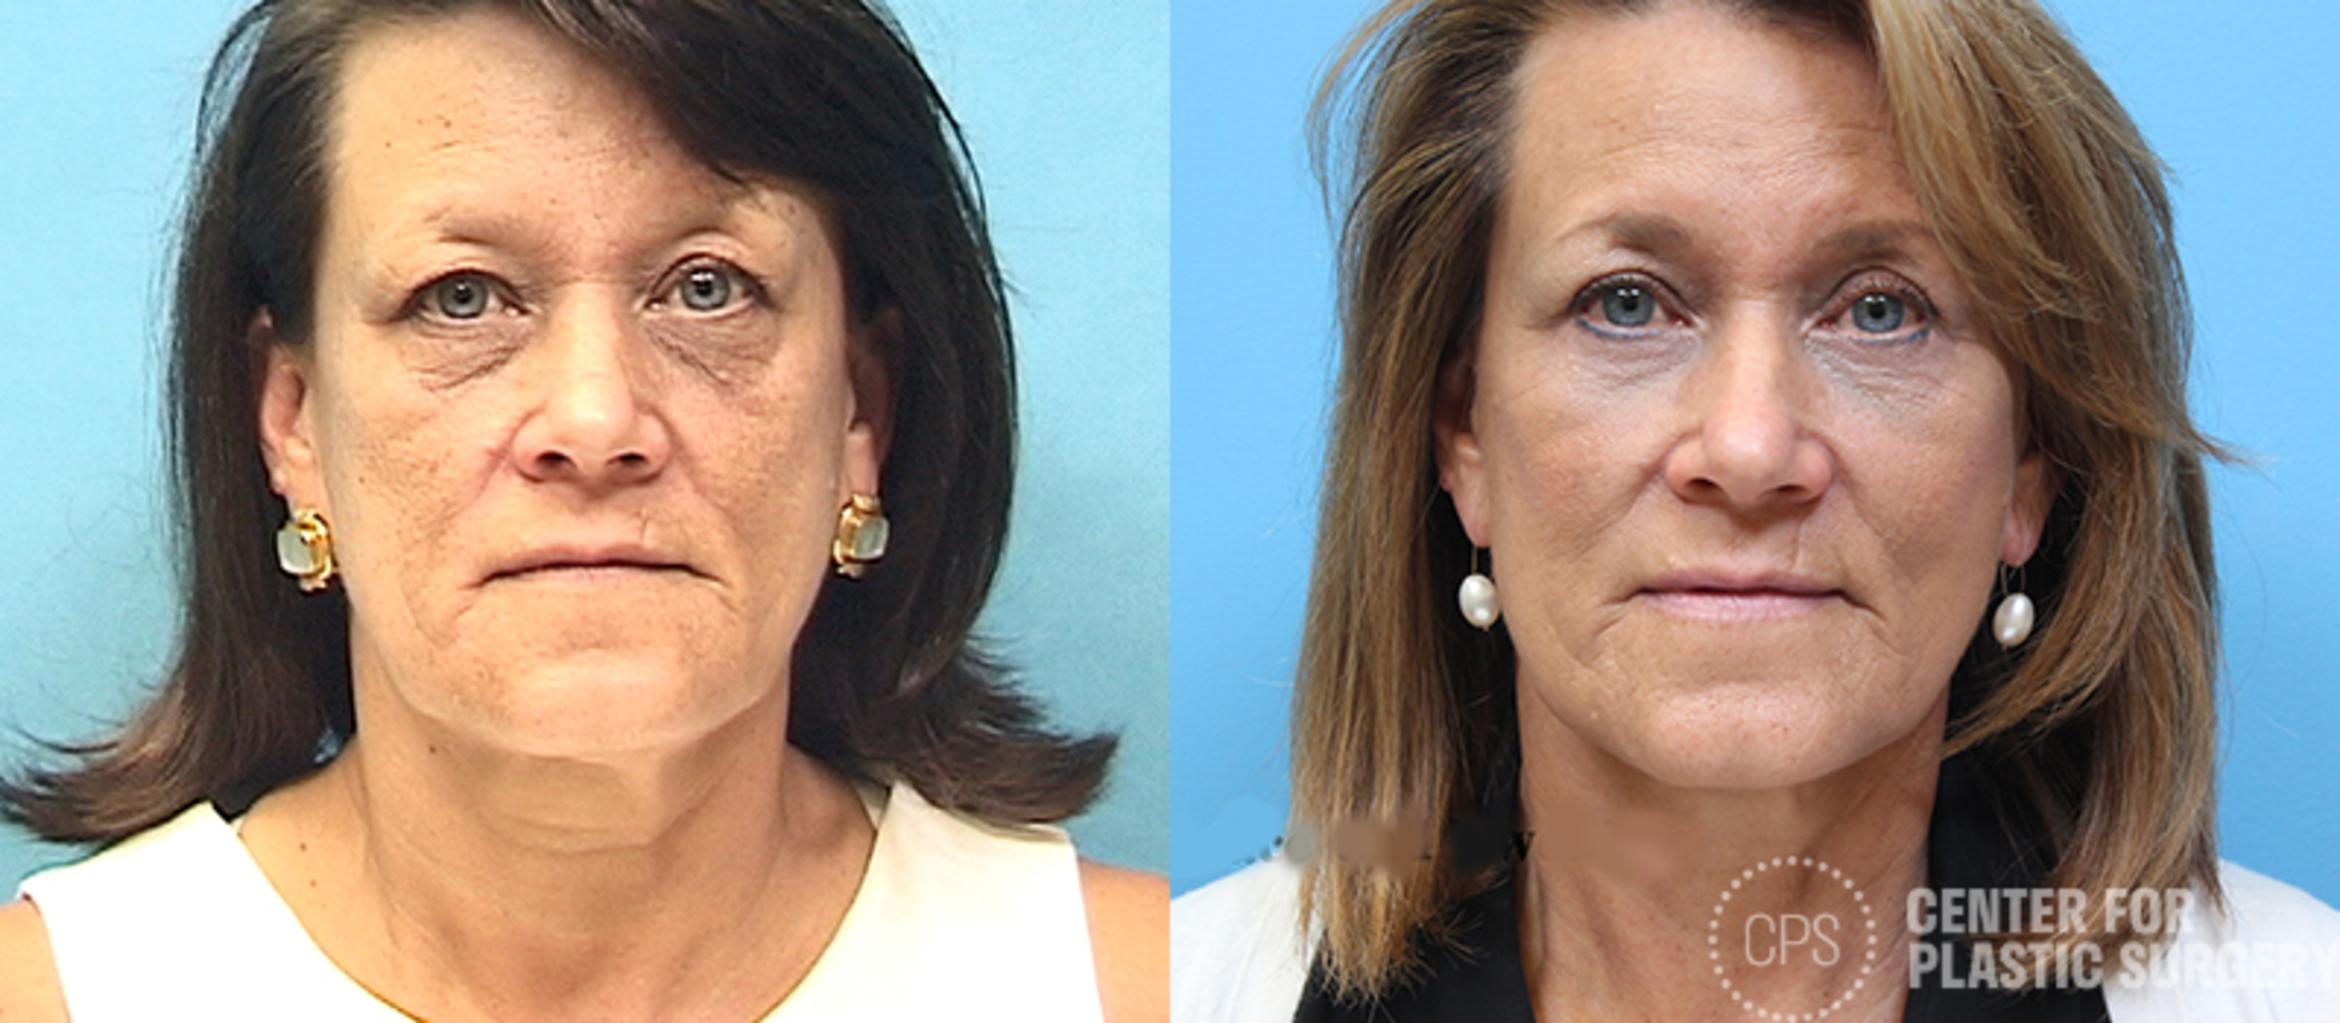 Facelift Case 11 Before & After Front | Annandale, VA & Chevy Chase, MD, Washington D.C. Metropolitan Area | Center for Plastic Surgery